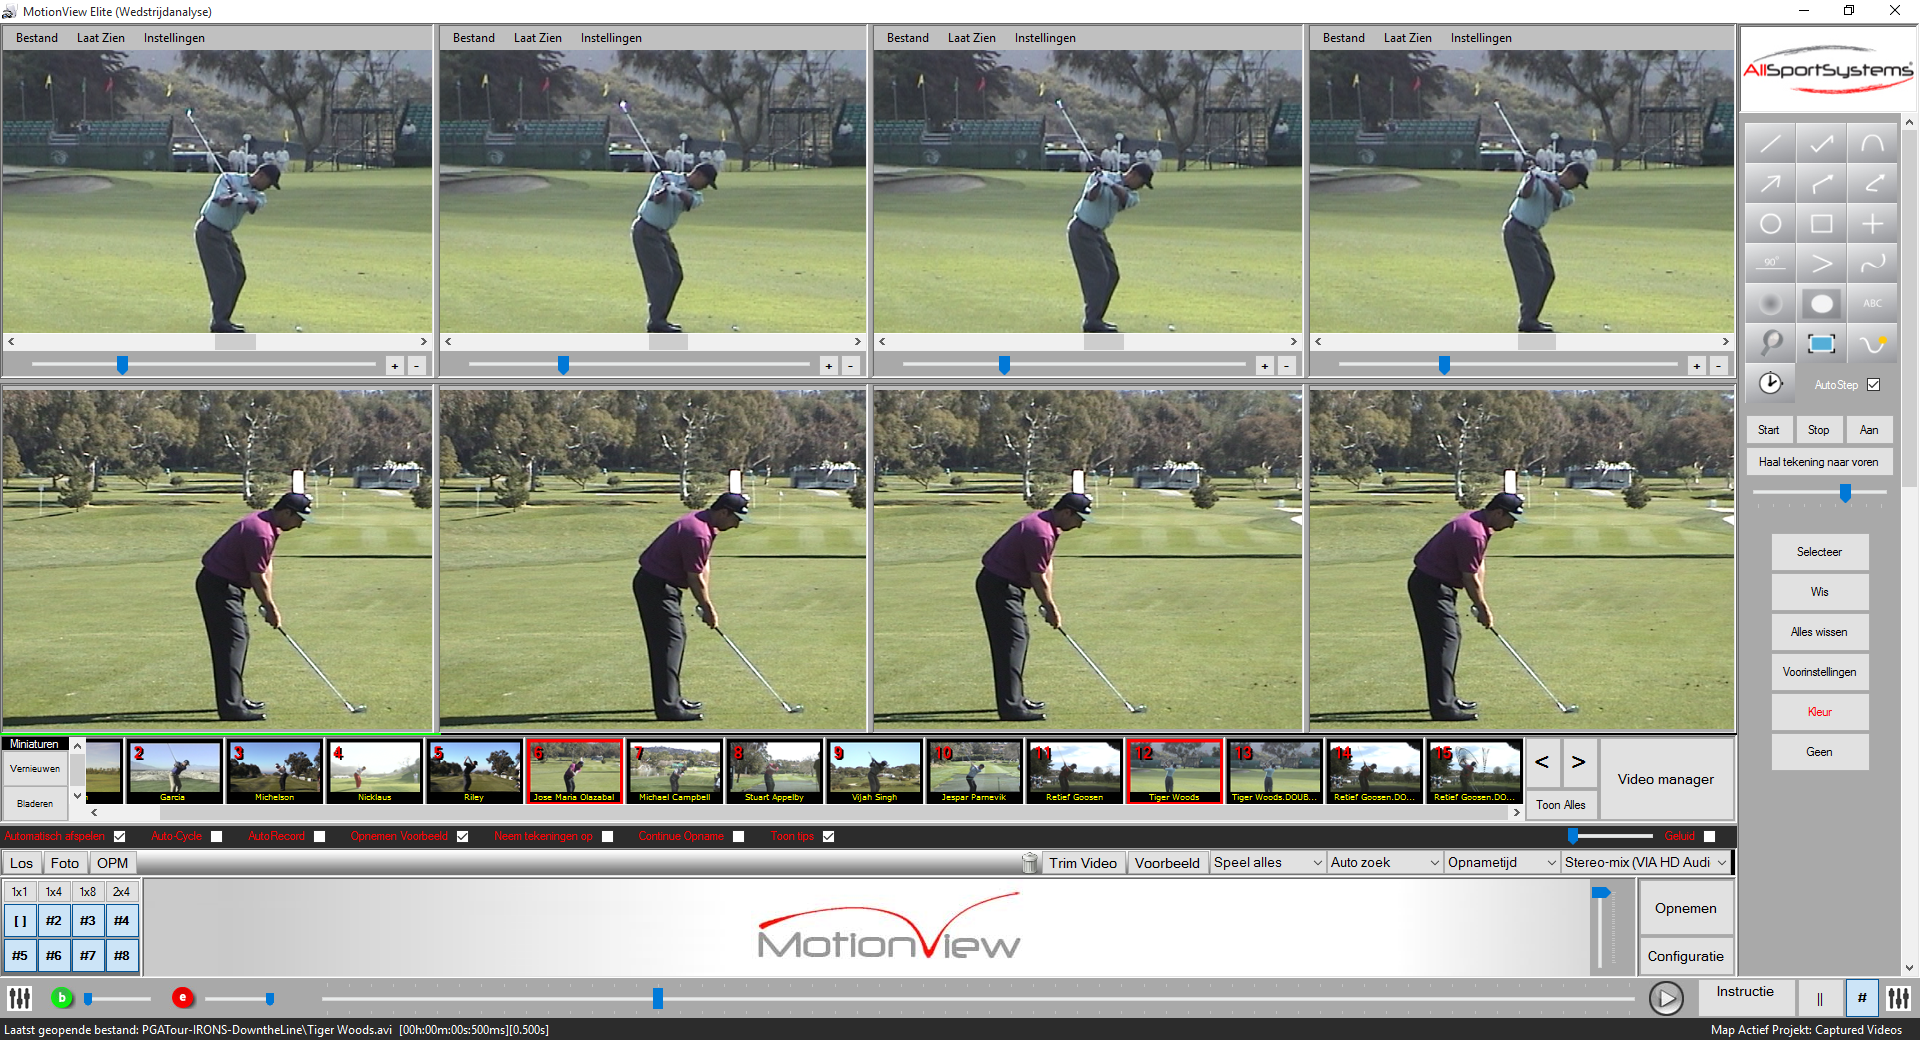 MotionView - Golf - 8 cameras - Video Analysis Software